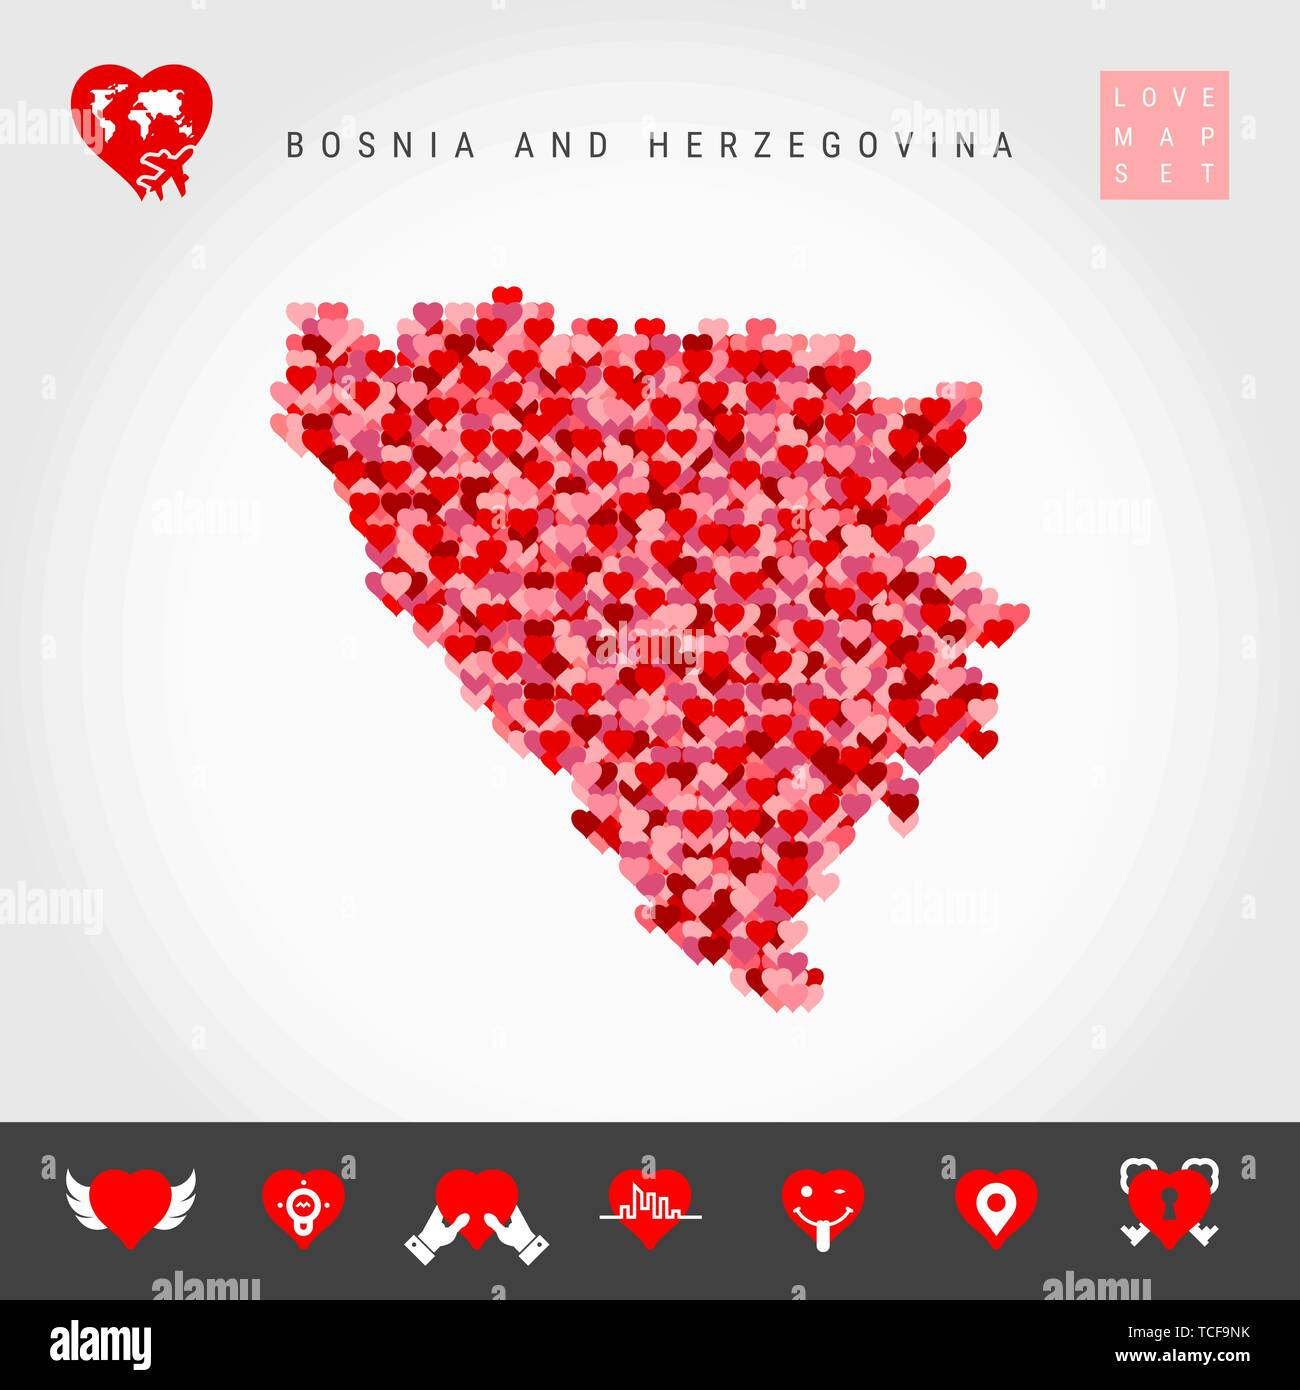 I Love Bosnia and Herzegovina. Red and Pink Hearts Pattern Vector Map of Bosnia and Herzegovina Isolated on Grey Background. Love Icon Set. - Stock Vector